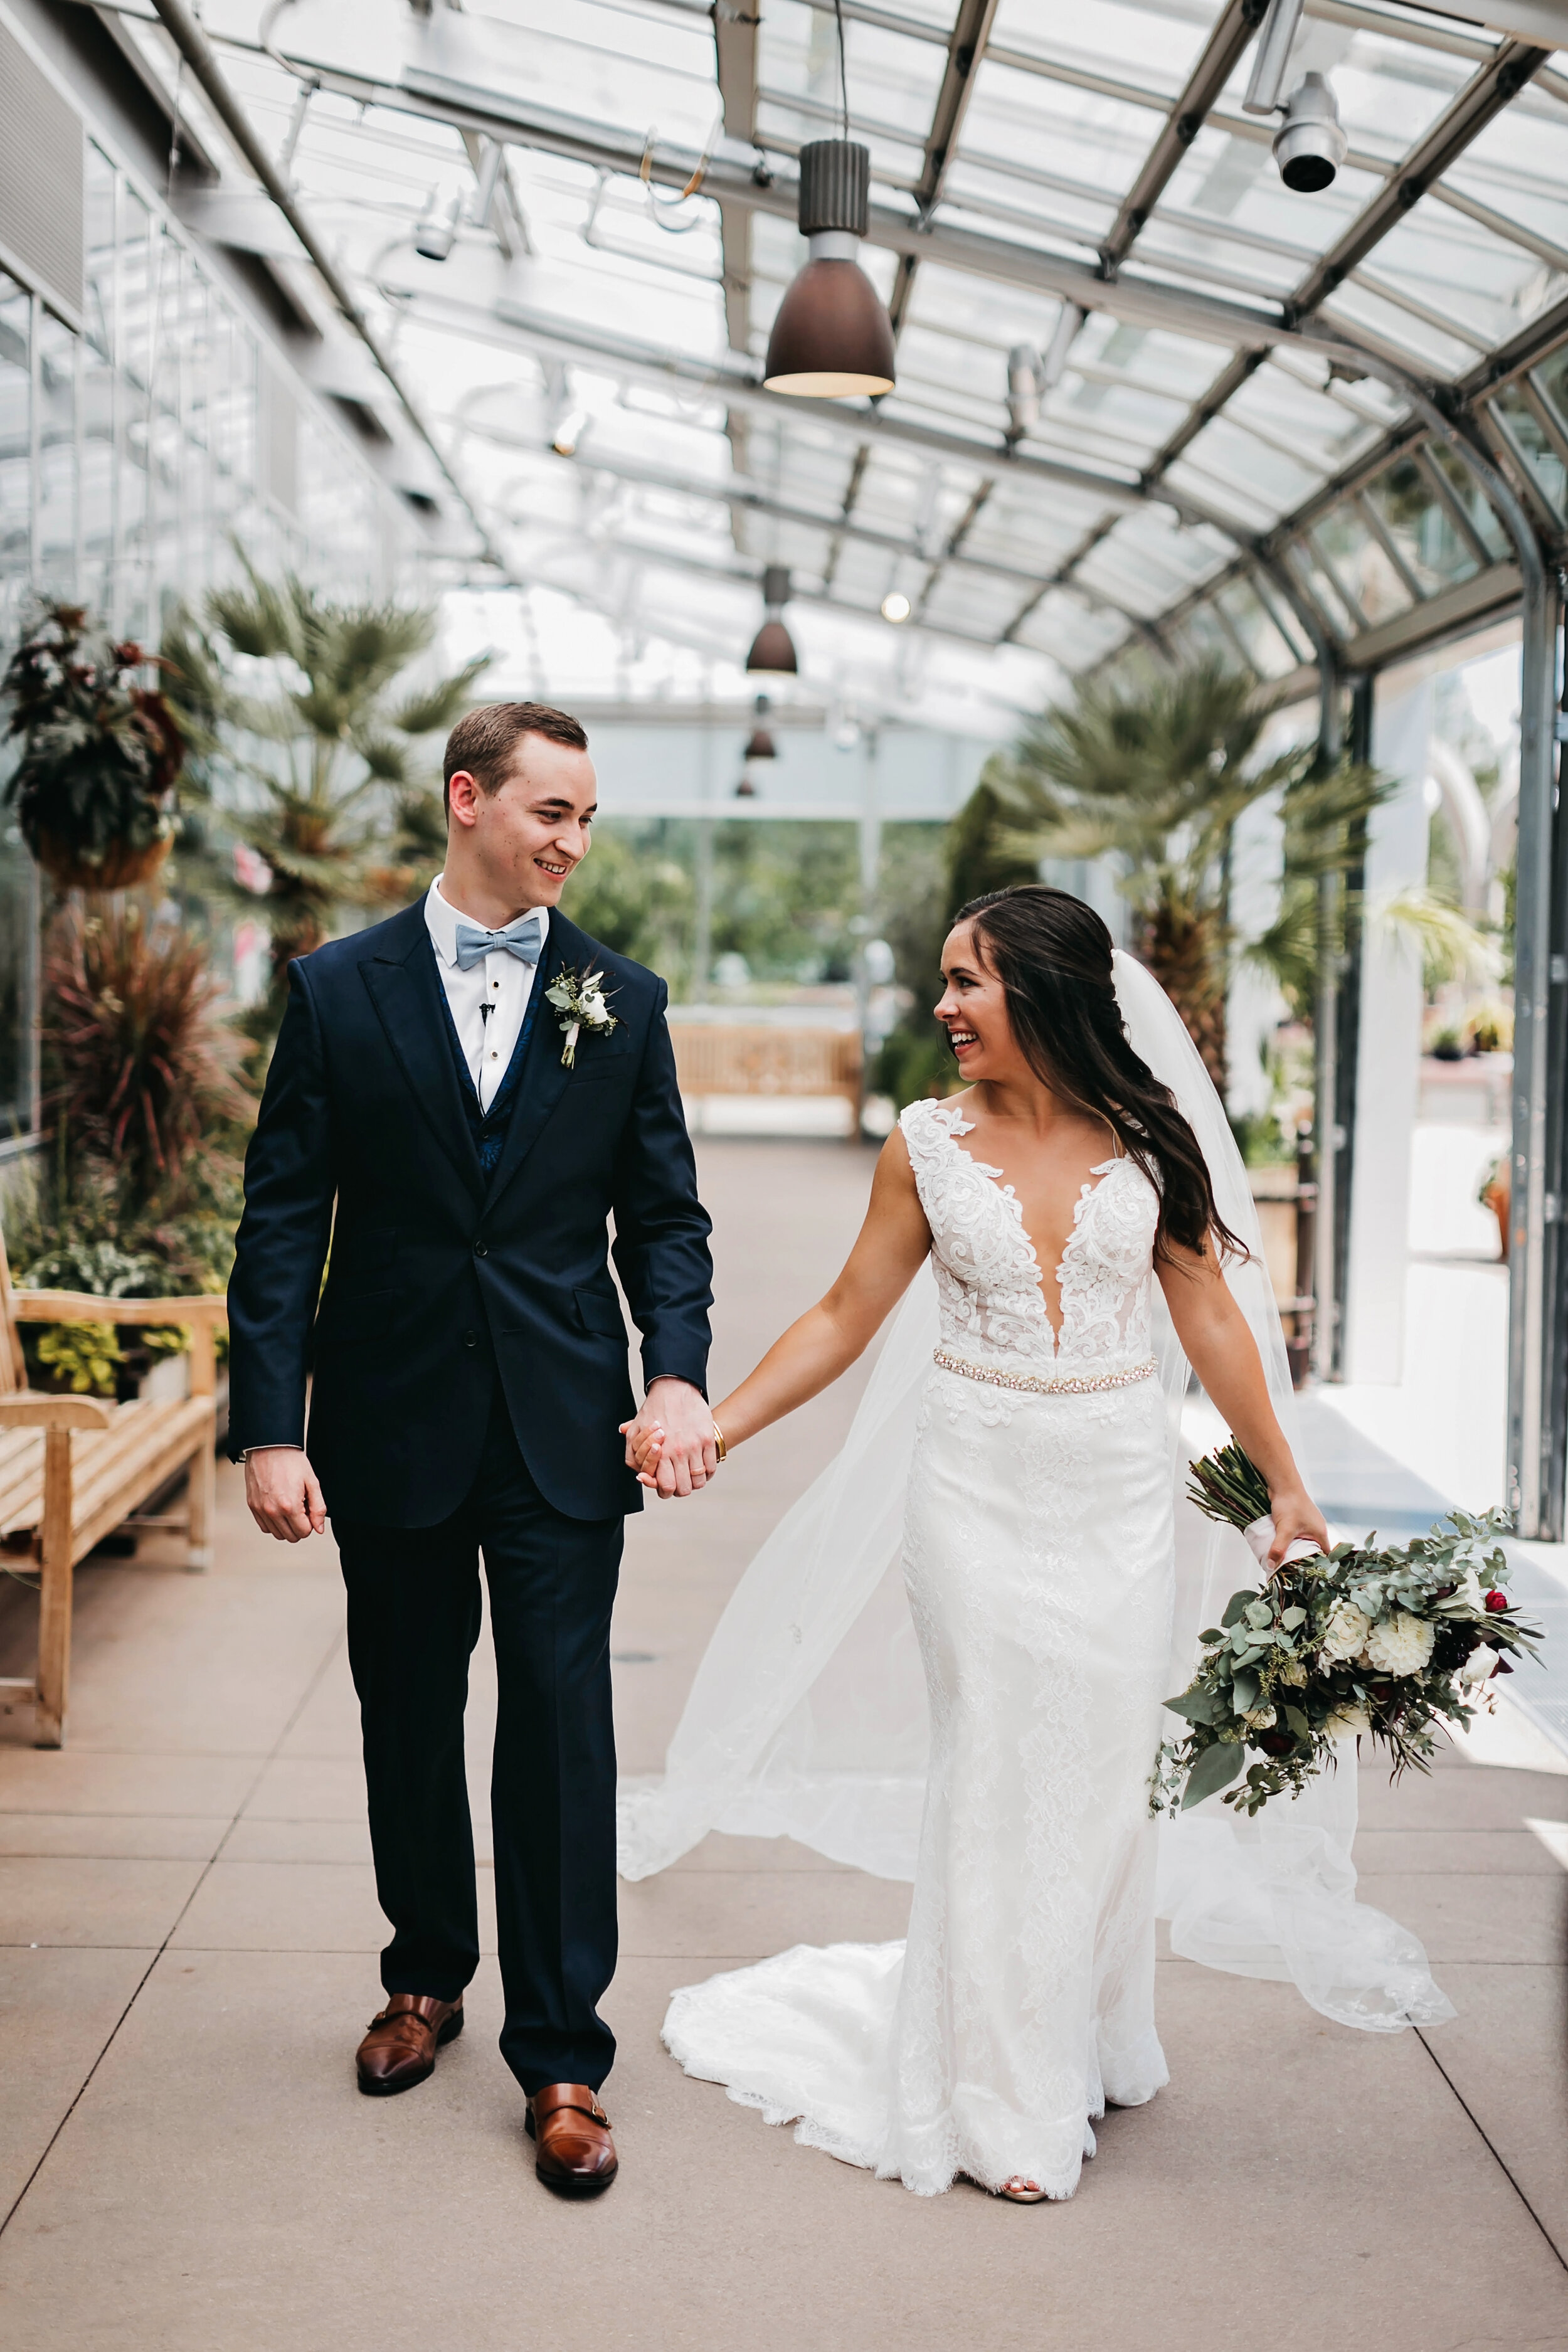 Bekah and Zach 2019- 24 hours-9.jpg